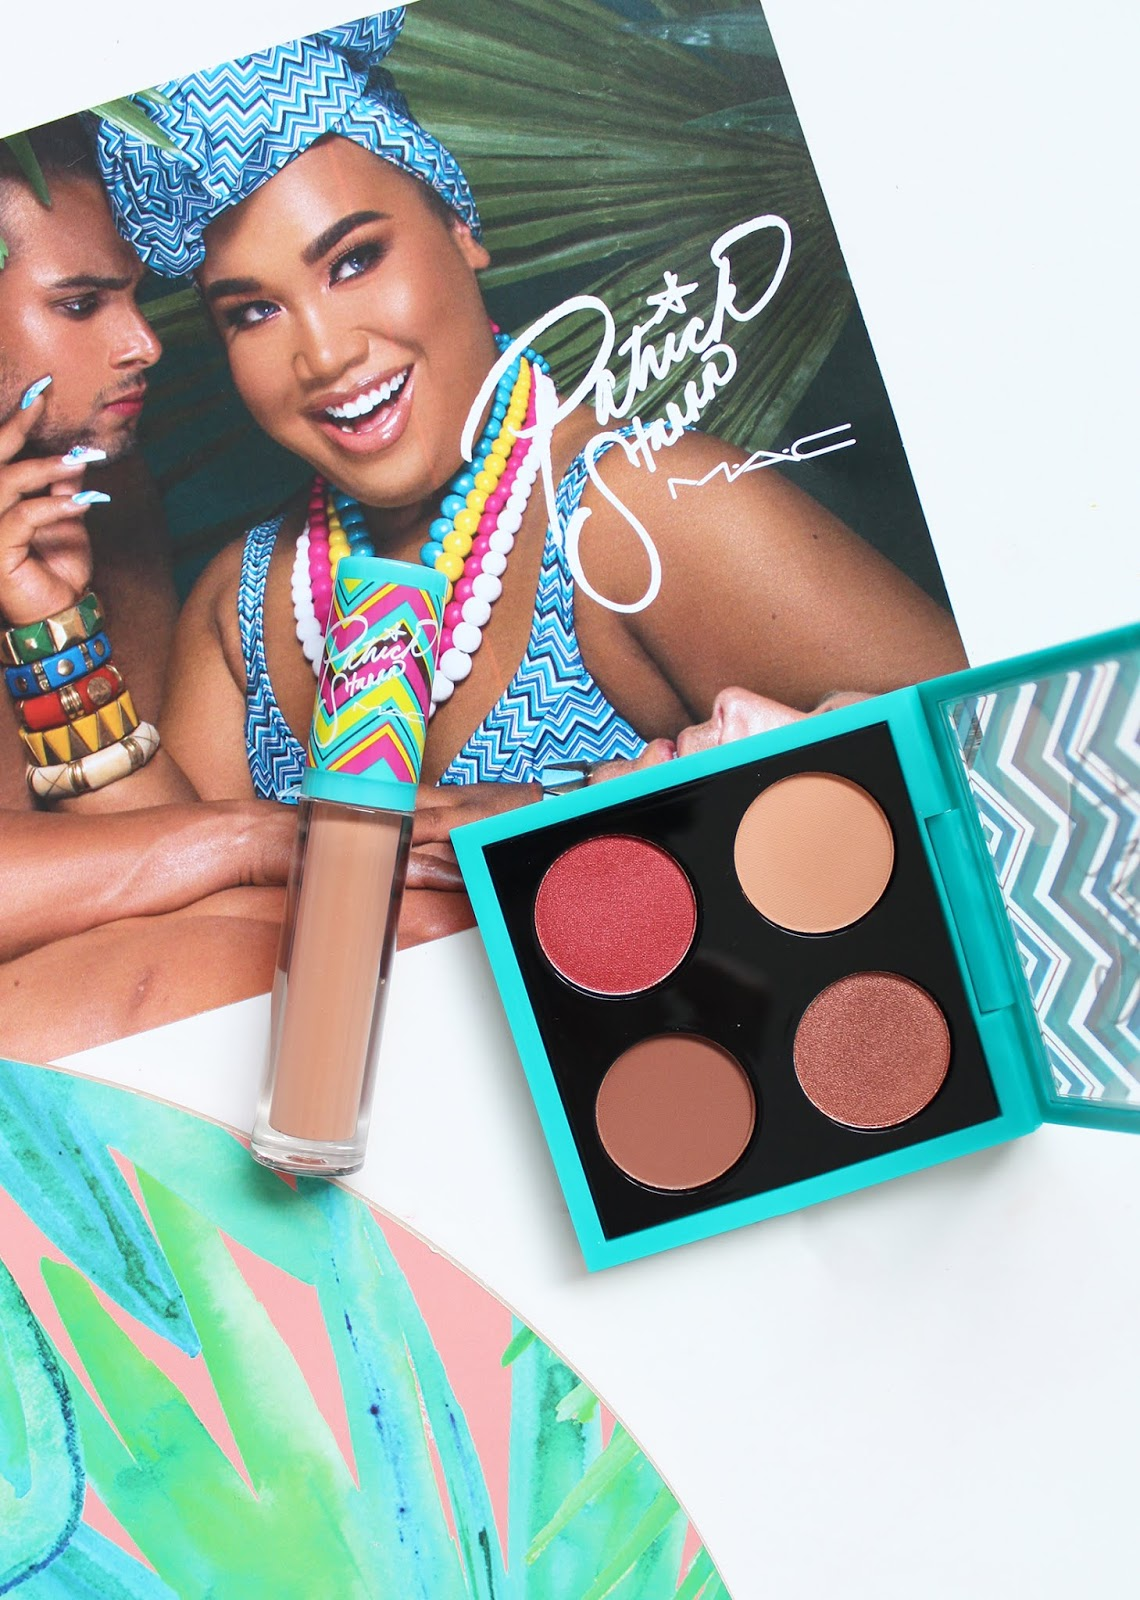 M.A.C | Patrick Starrr Diva Feva Collection - CassandraMyee